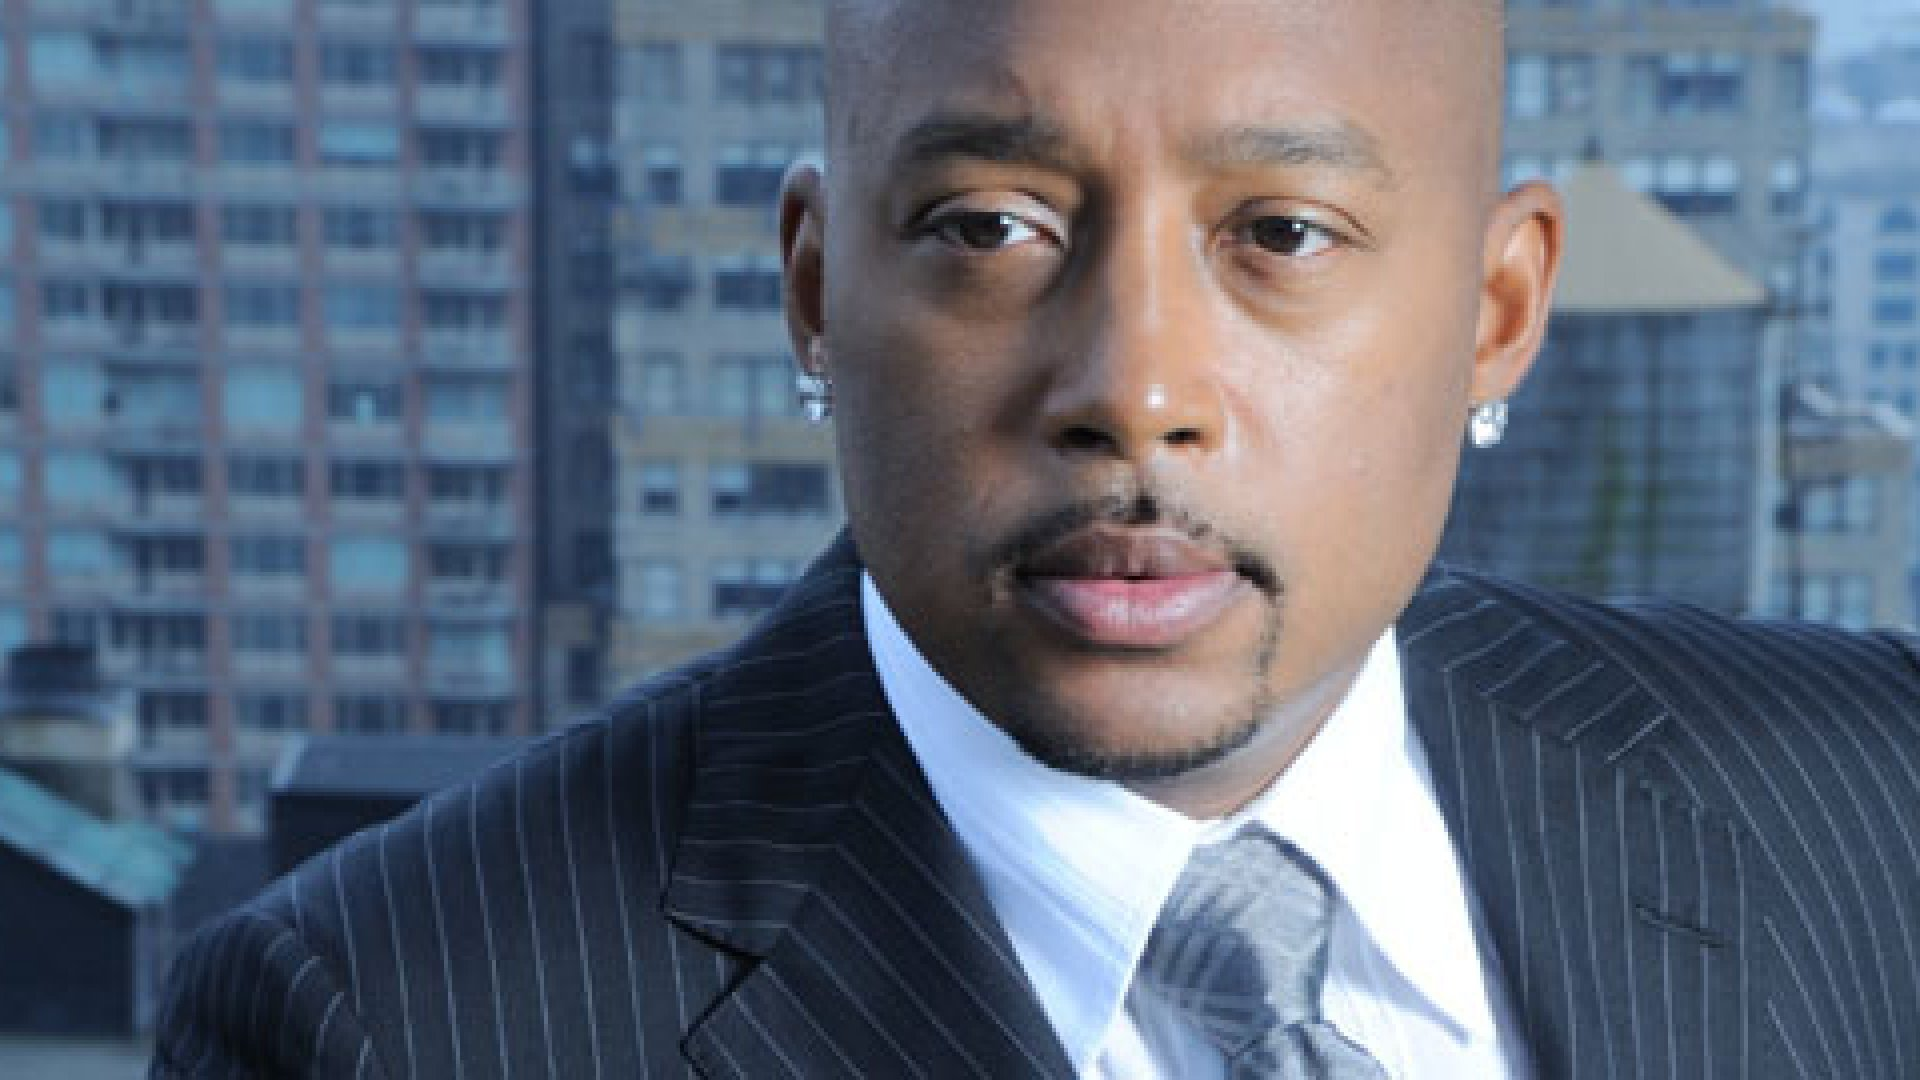 Daymond John, an entrepreneur, investor, television personality, author and motivational speaker, is best known as the founder, president and CEO of FUBU, and appears as an investor on the ABC reality television series <em>Shark Tank</em>.